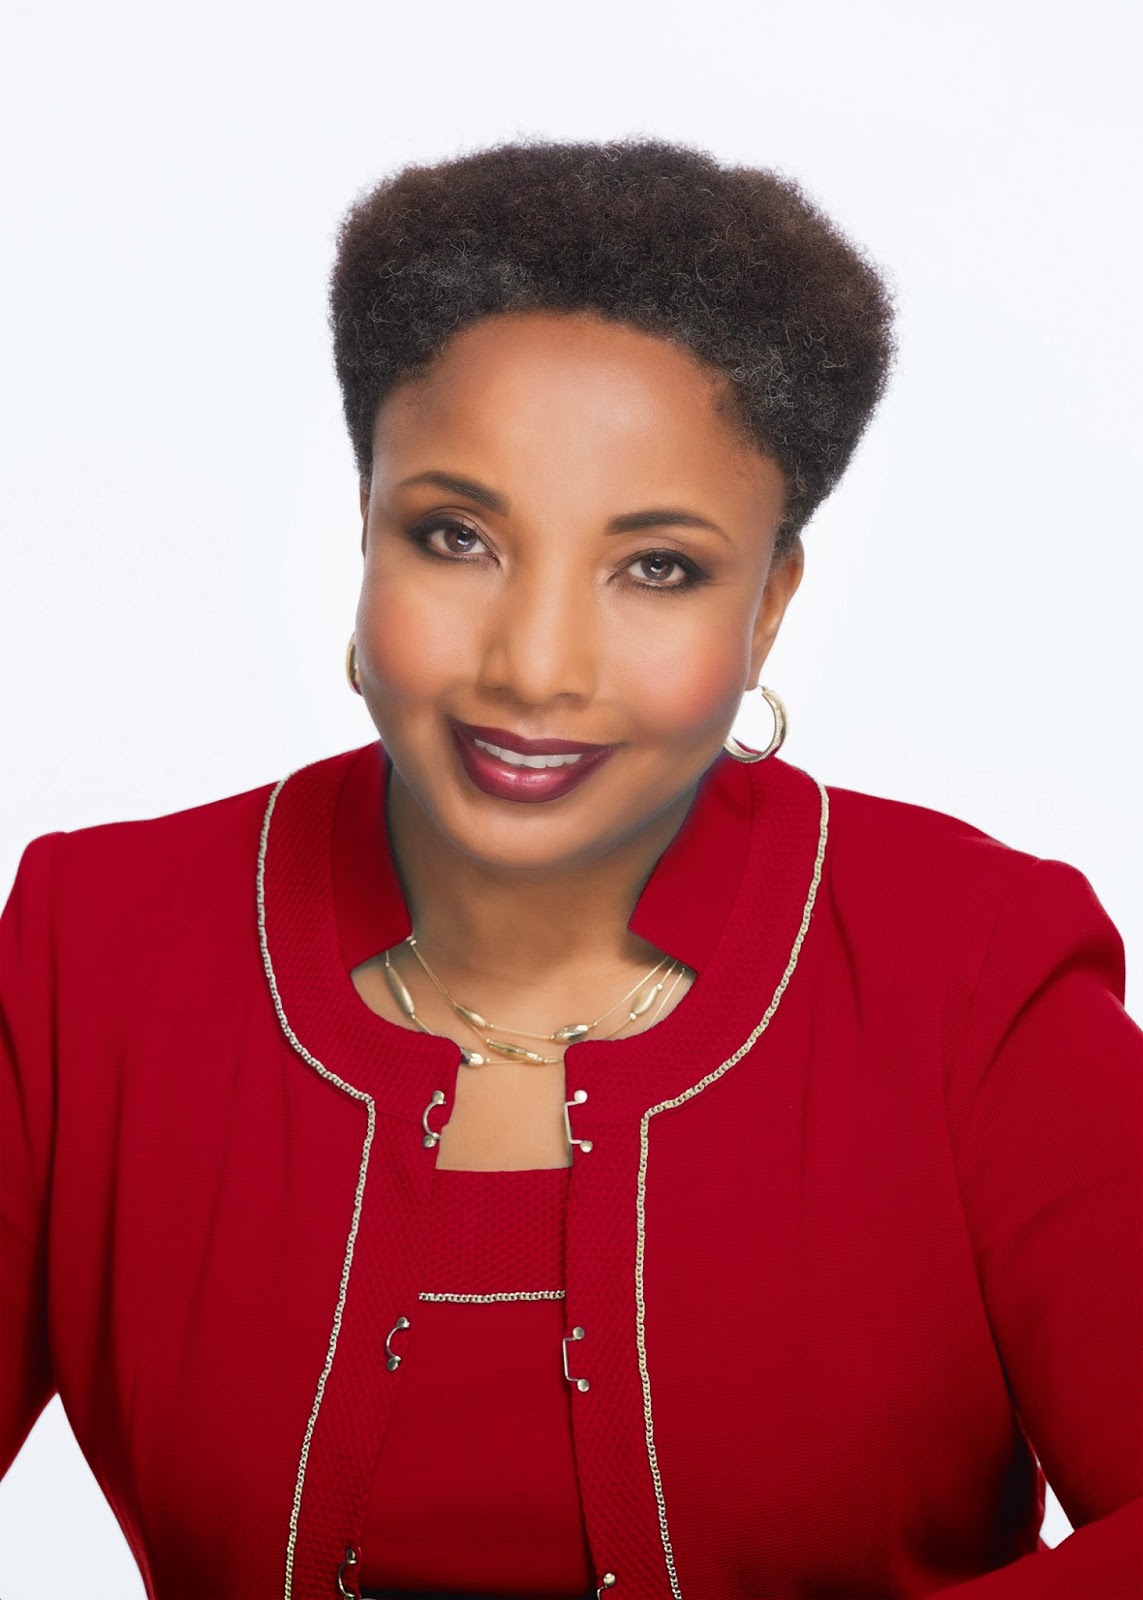 a disgruntled republican in nashville carol swain seeks positon it is great enthusiasm and high expectations for the state gop that i ask your support in my quest to serve as the interim chairperson of the tennessee